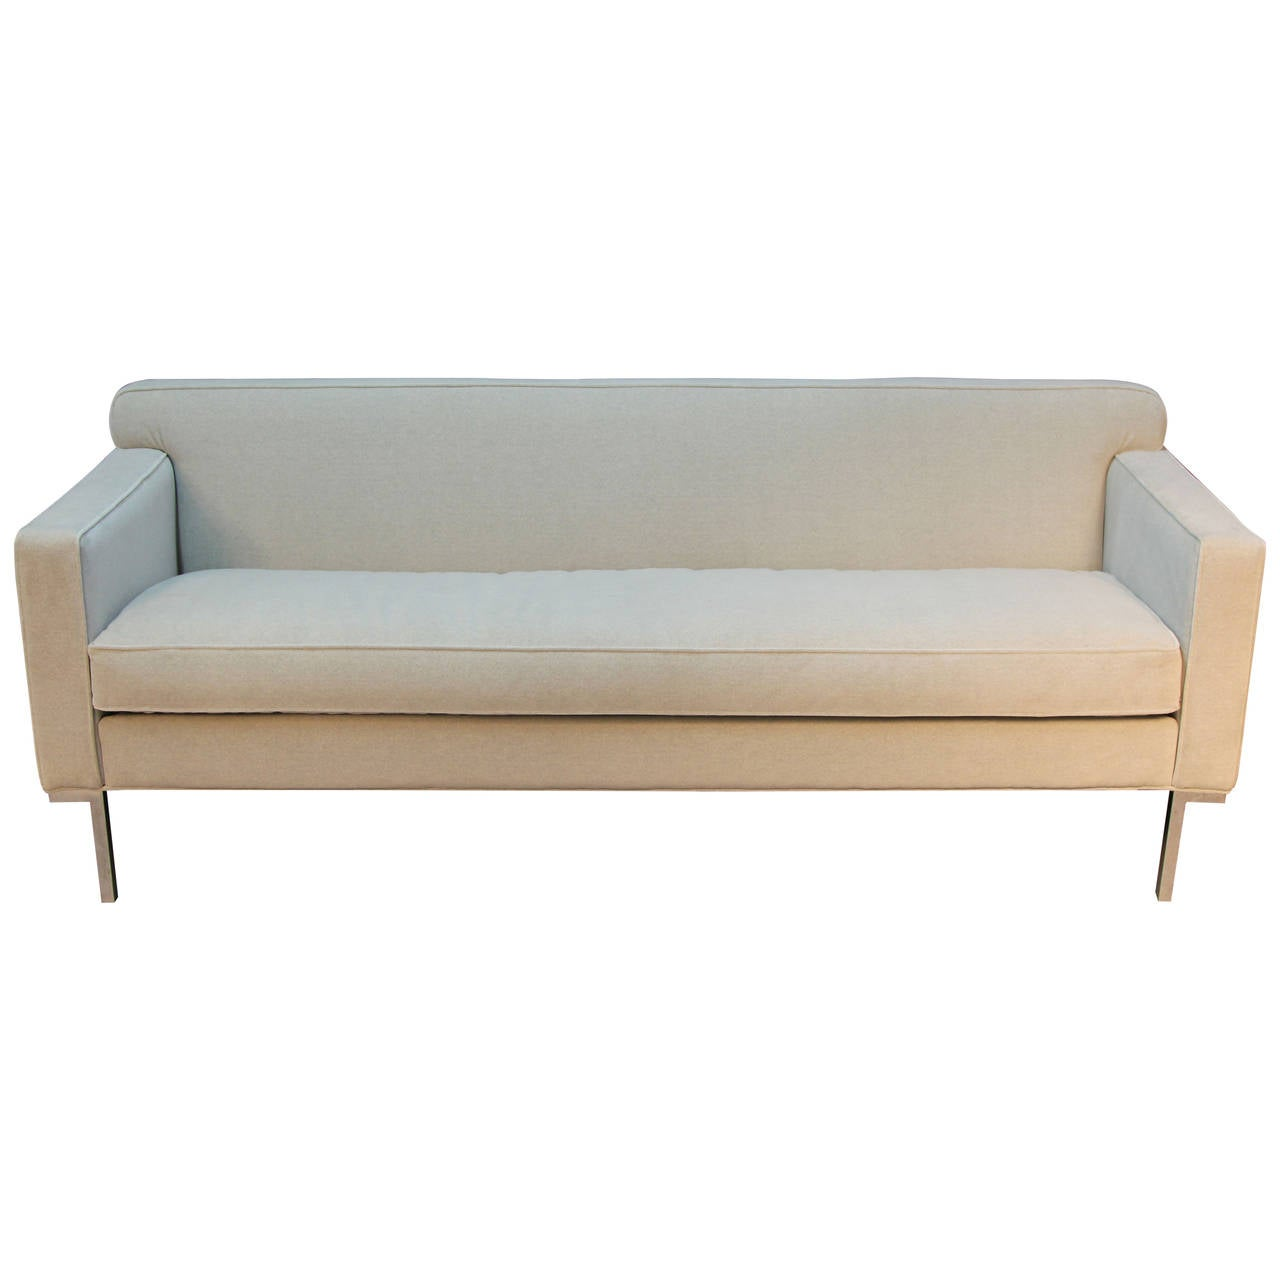 Sleek Leather Couch Sleek And Chic Sofa At 1stdibs